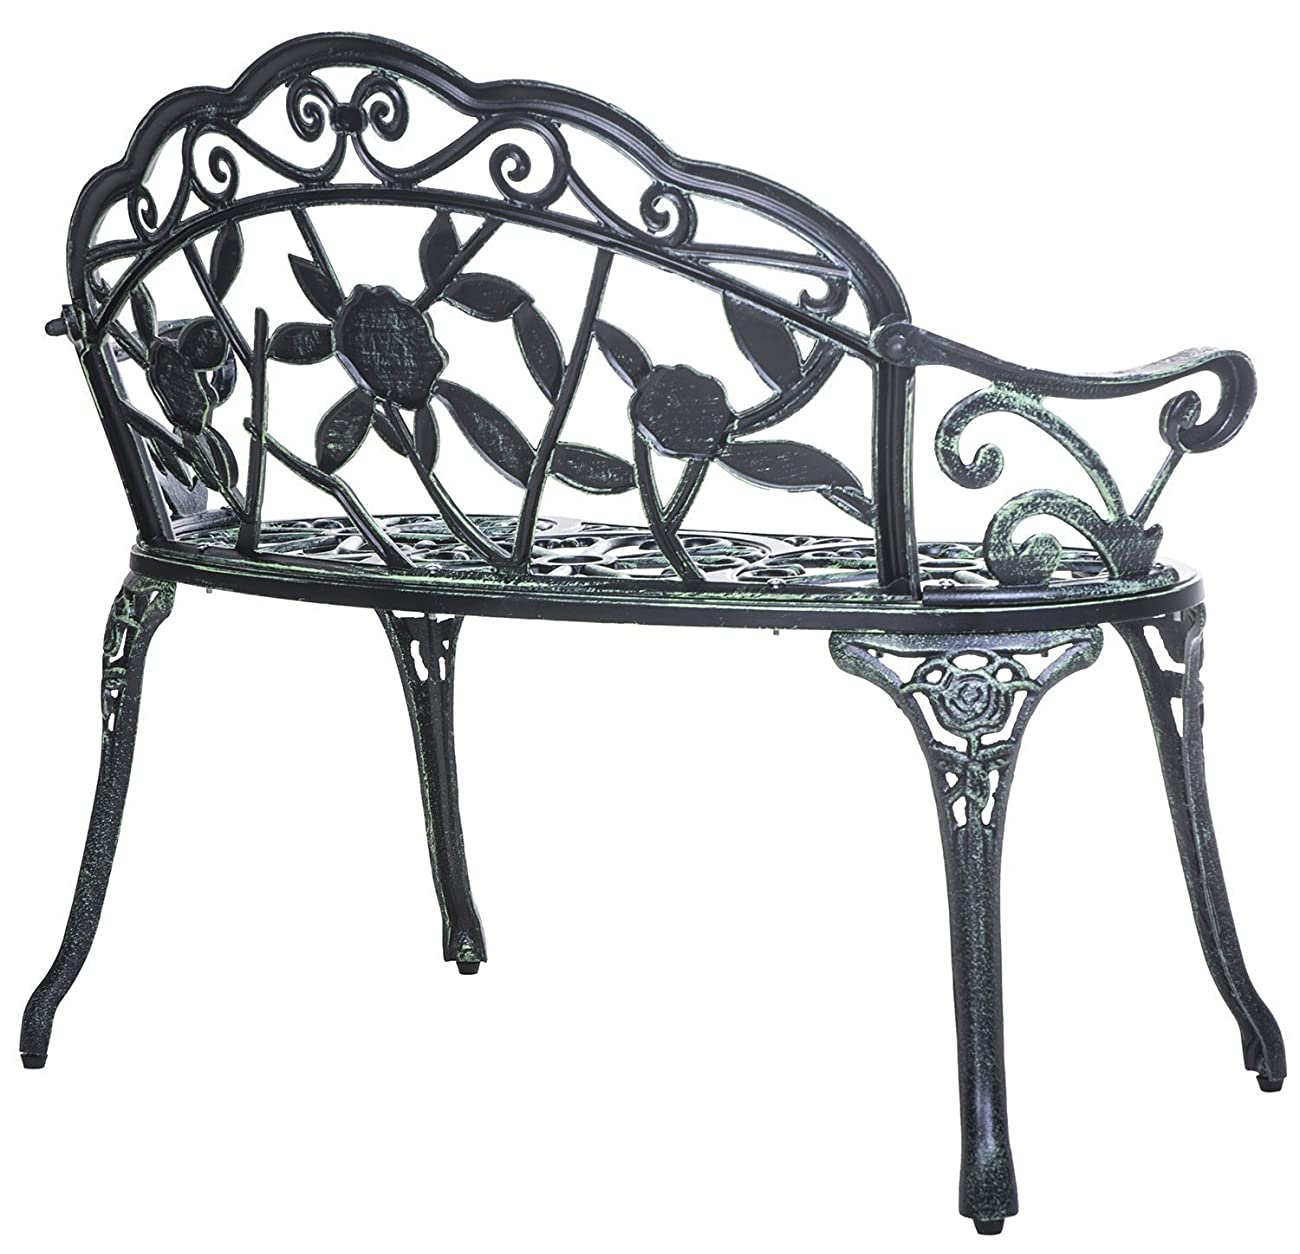 Merax Cast Iron Antique Rose Style outdoor Patio Garden Park Bench, Cast Iron 3